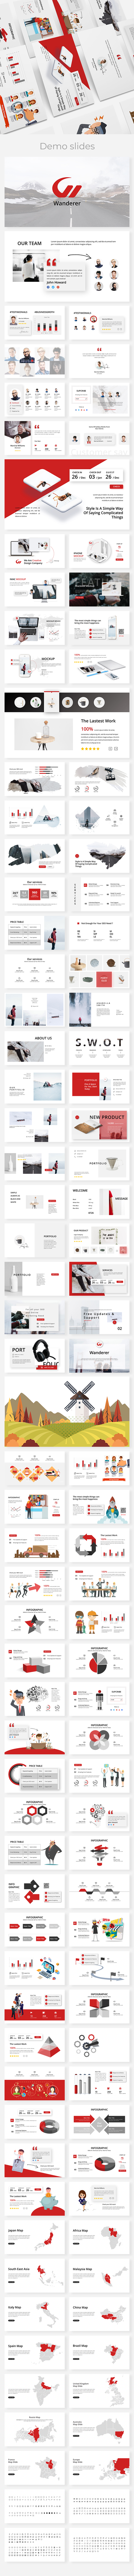 Wanderer Creative Powerpoint Template - Creative PowerPoint Templates